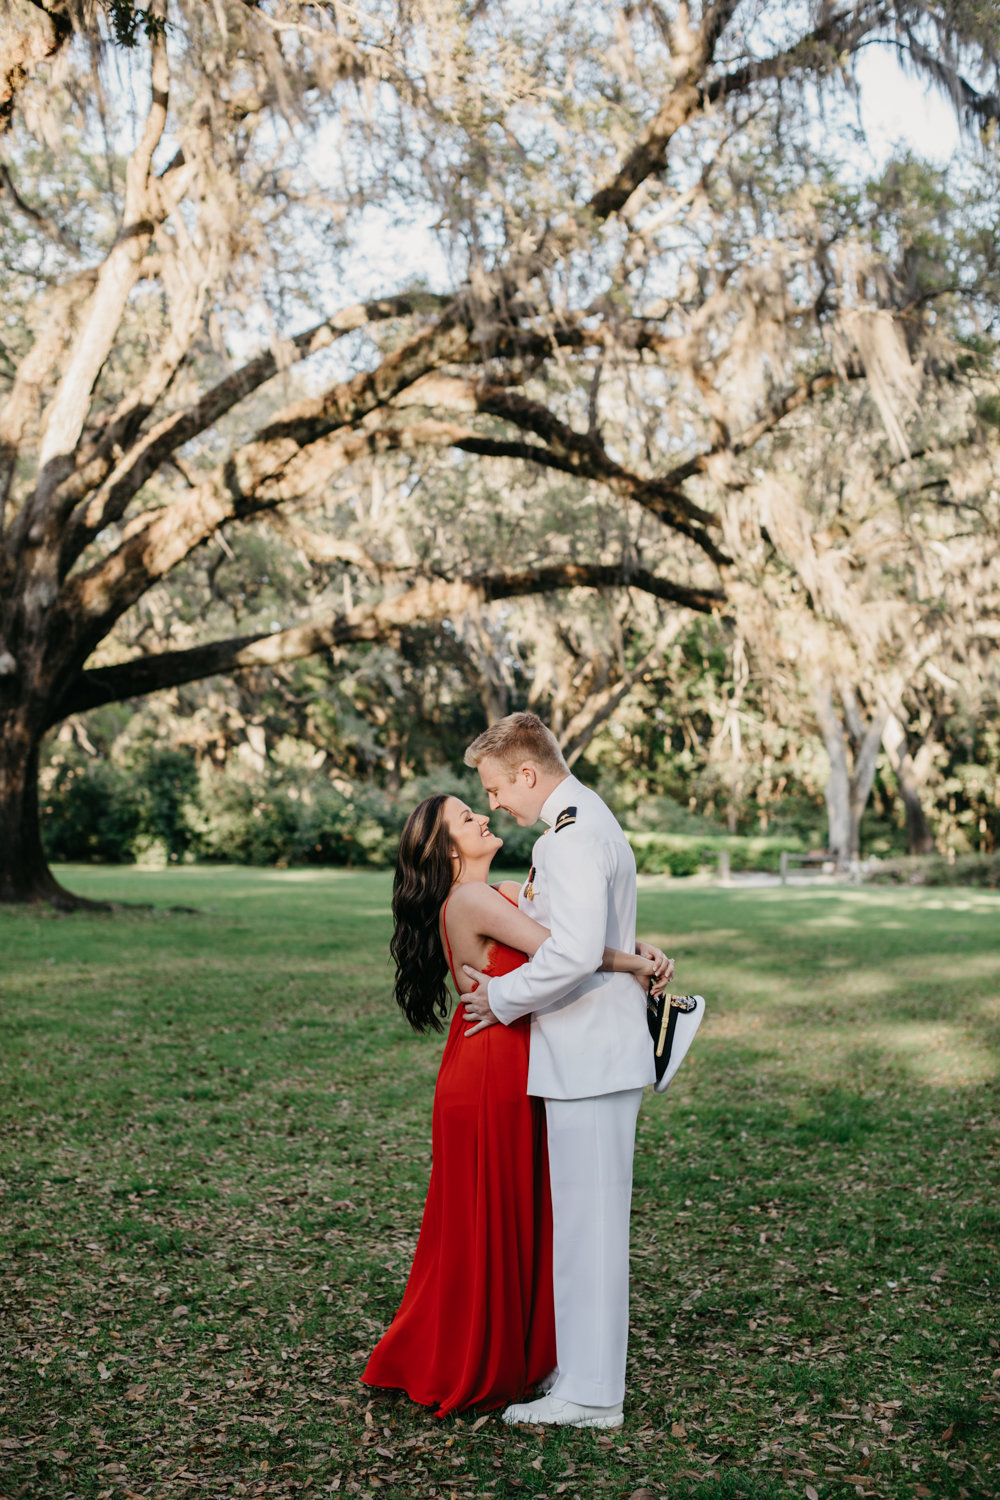 Ash-Simmons-Photography-Eden-Gardens-Couples-Session-2872